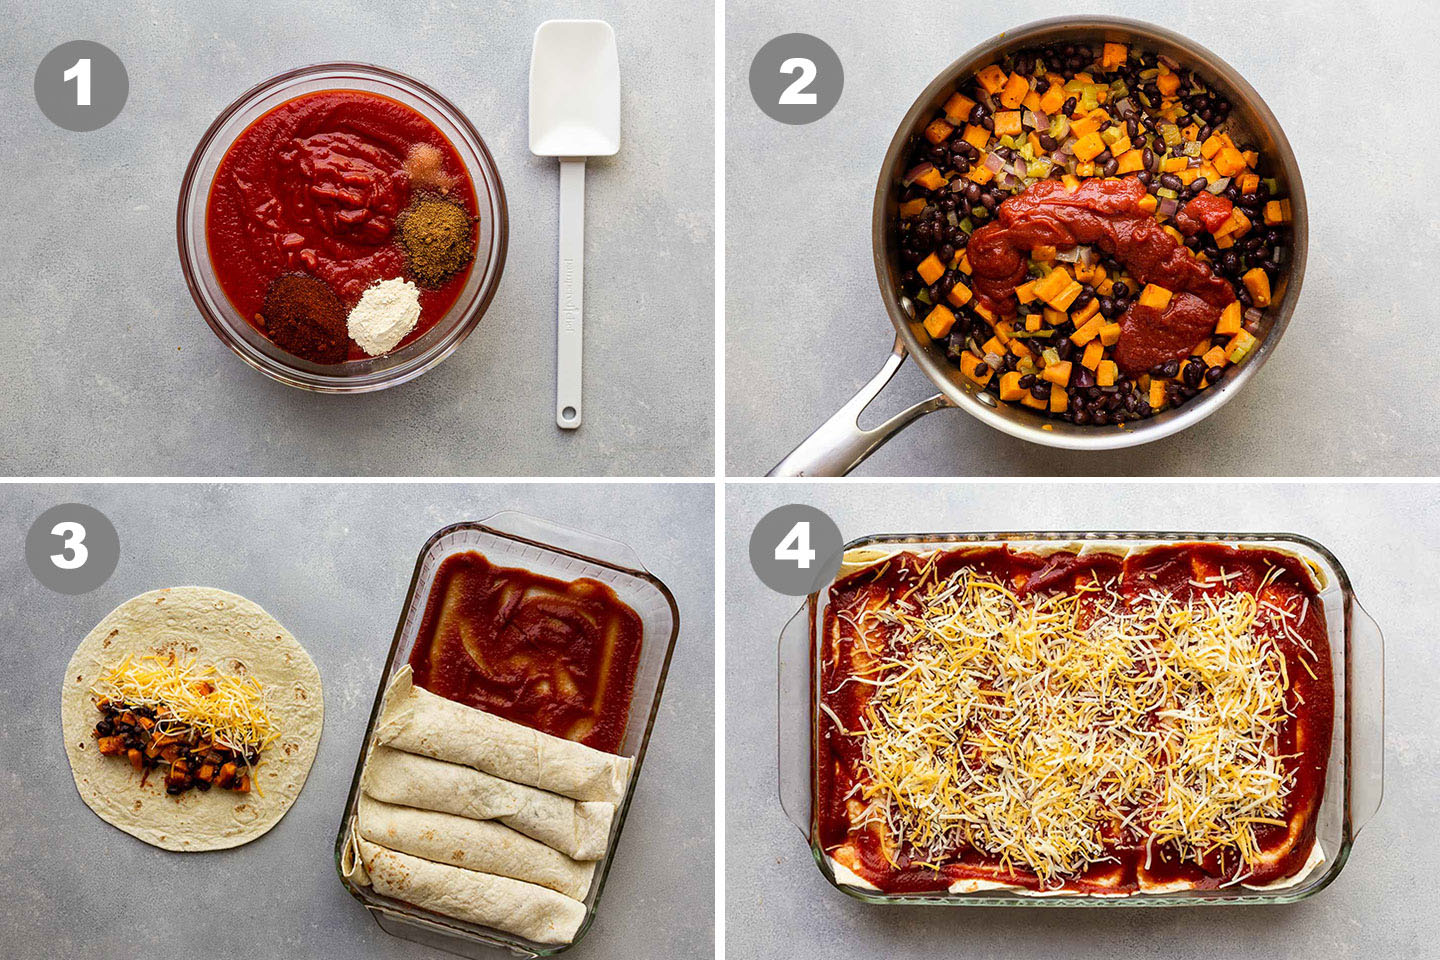 step-by-step photos of how to make sweet potato enchiladas.